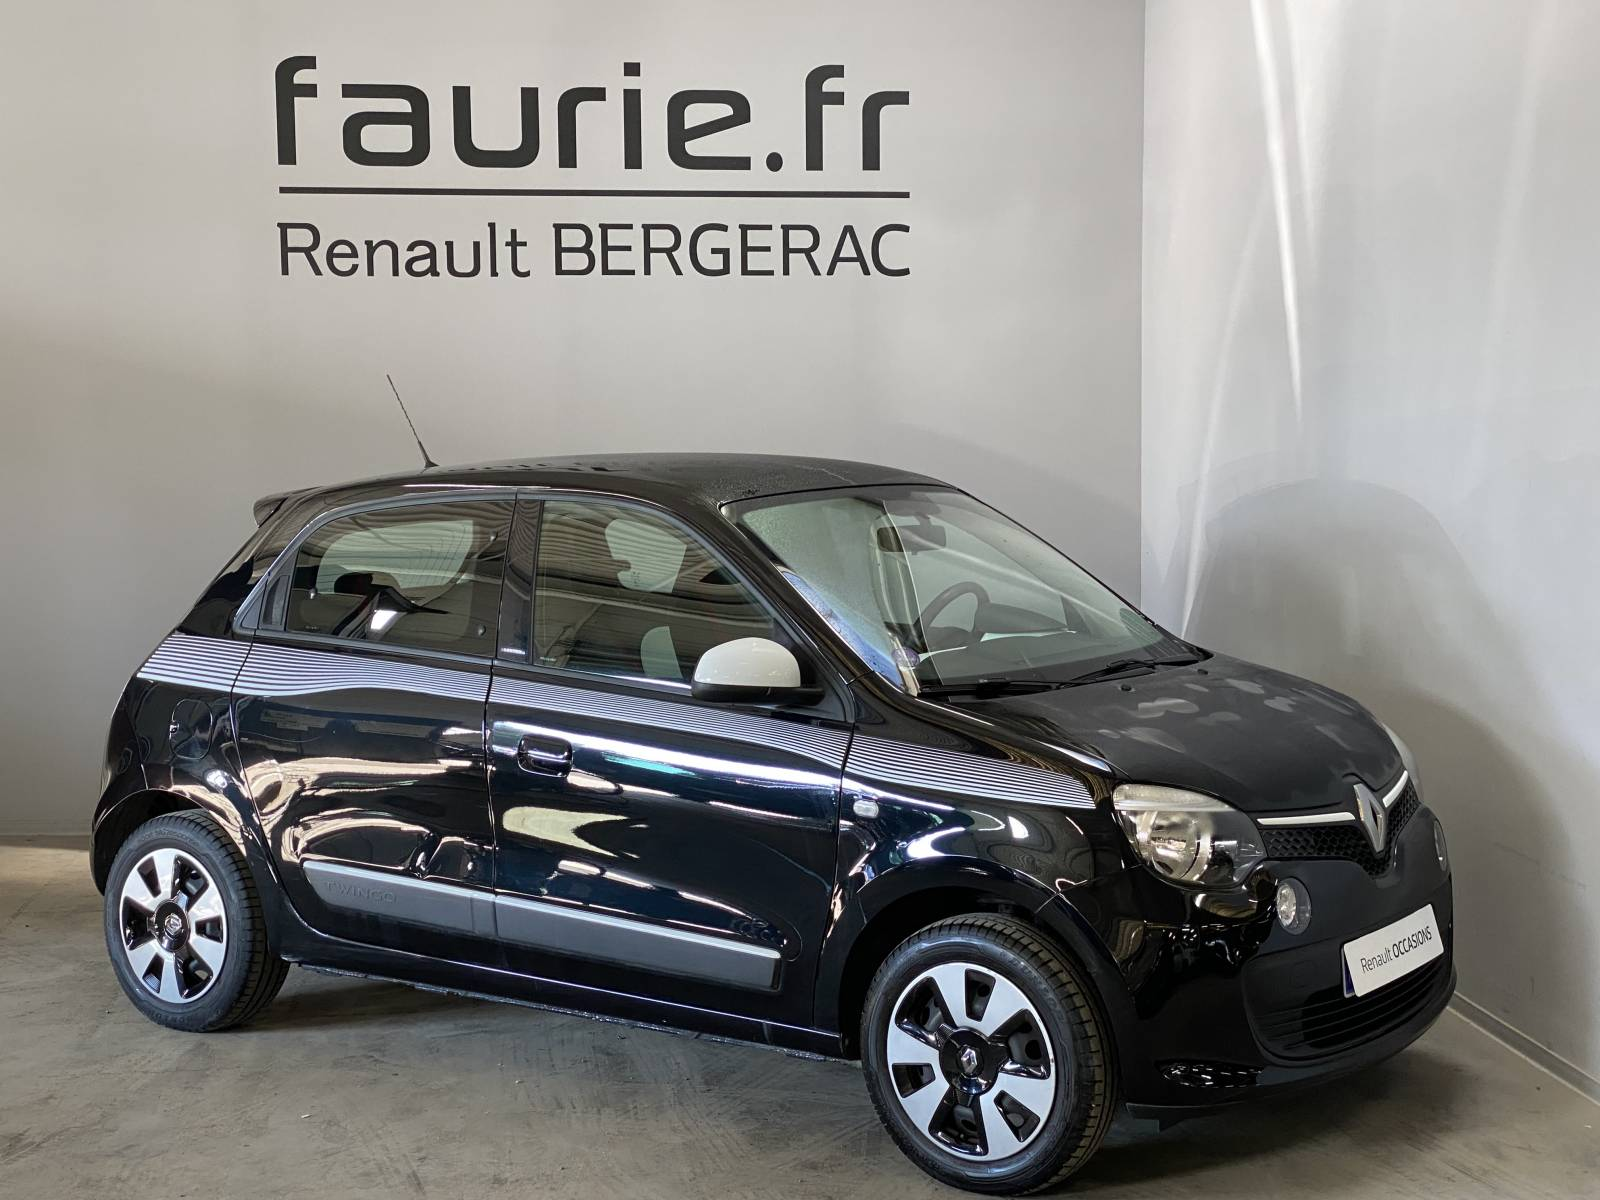 RENAULT Twingo III 0.9 TCe 90 Energy - véhicule d'occasion - Site Internet Faurie - Renault - Faurie Auto Bergerac - 24100 - Bergerac - 3